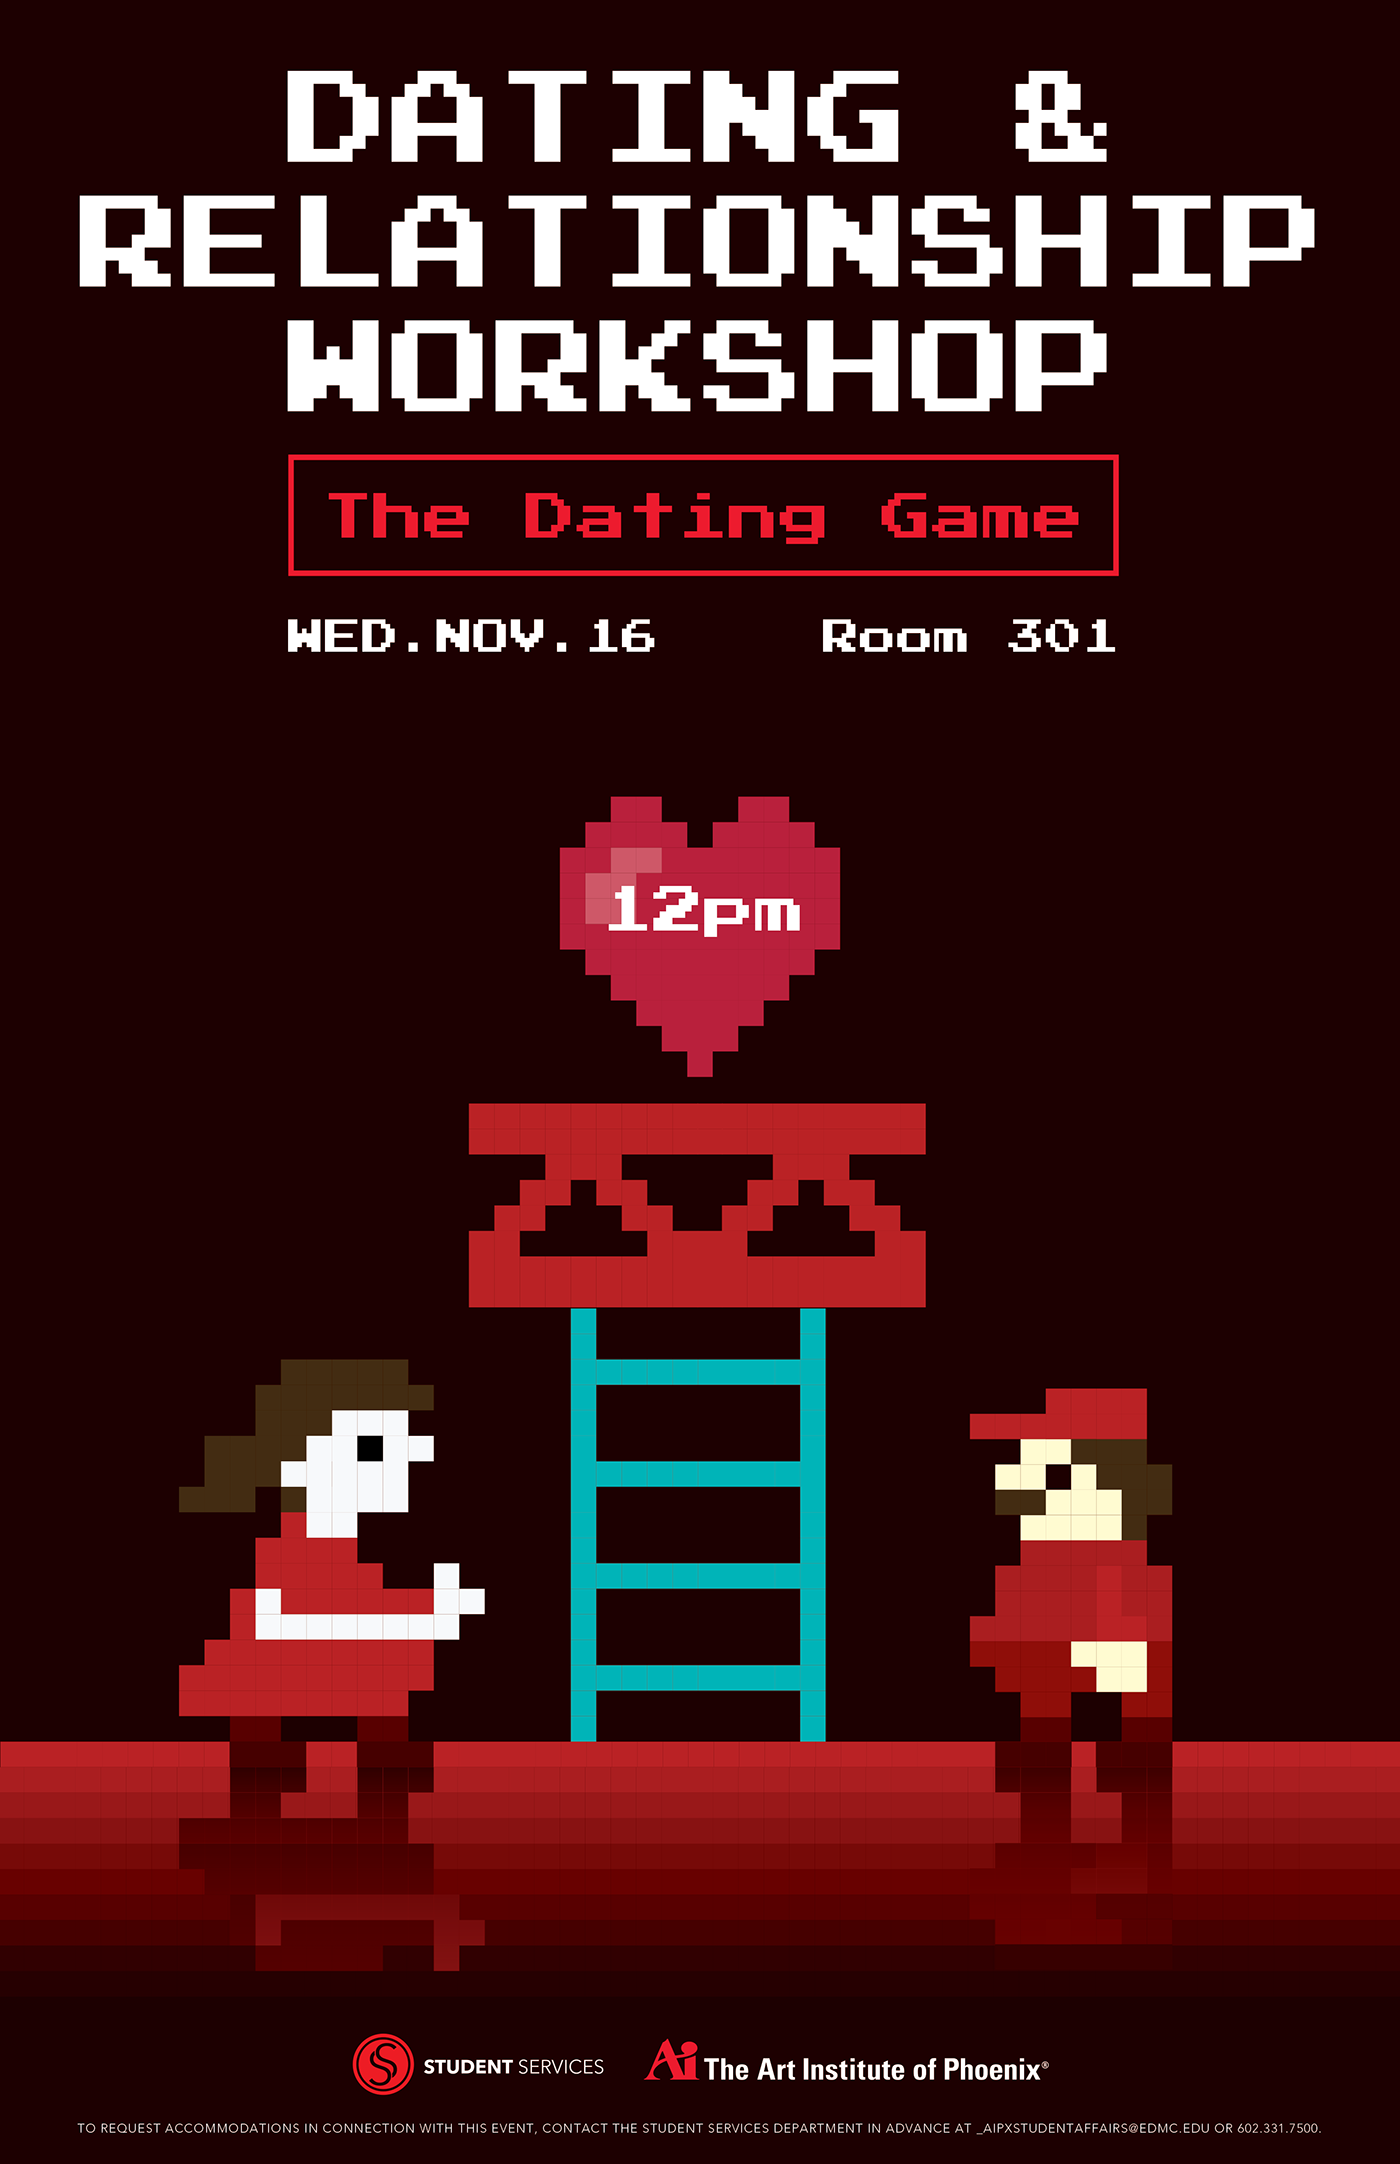 The Art Institute Of Phoenix Fall Event Posters On Behance - The art institute game design